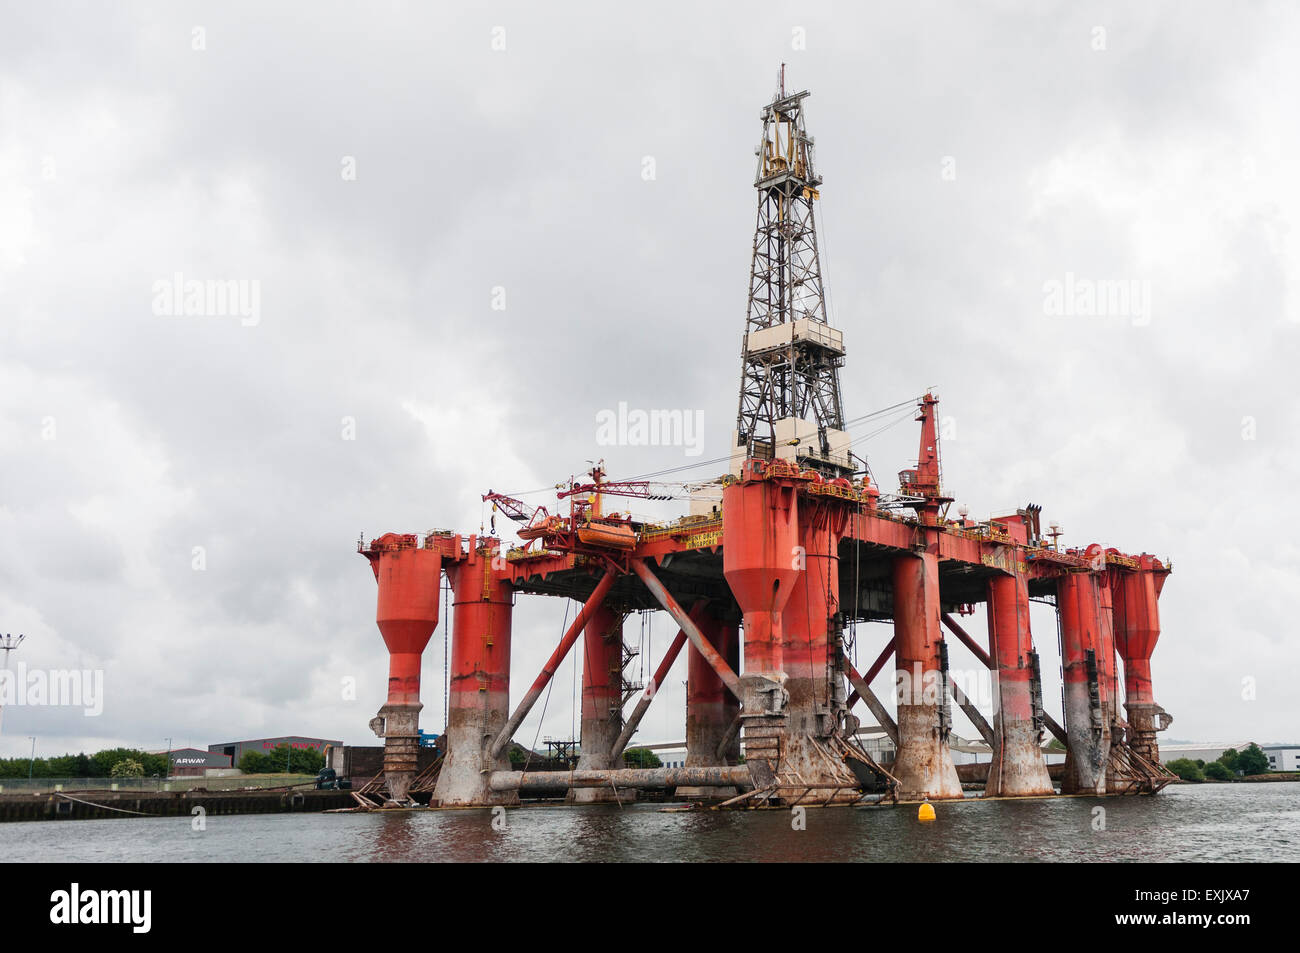 Burgny Dolphin drilling platform in Belfast for repairs. - Stock Image